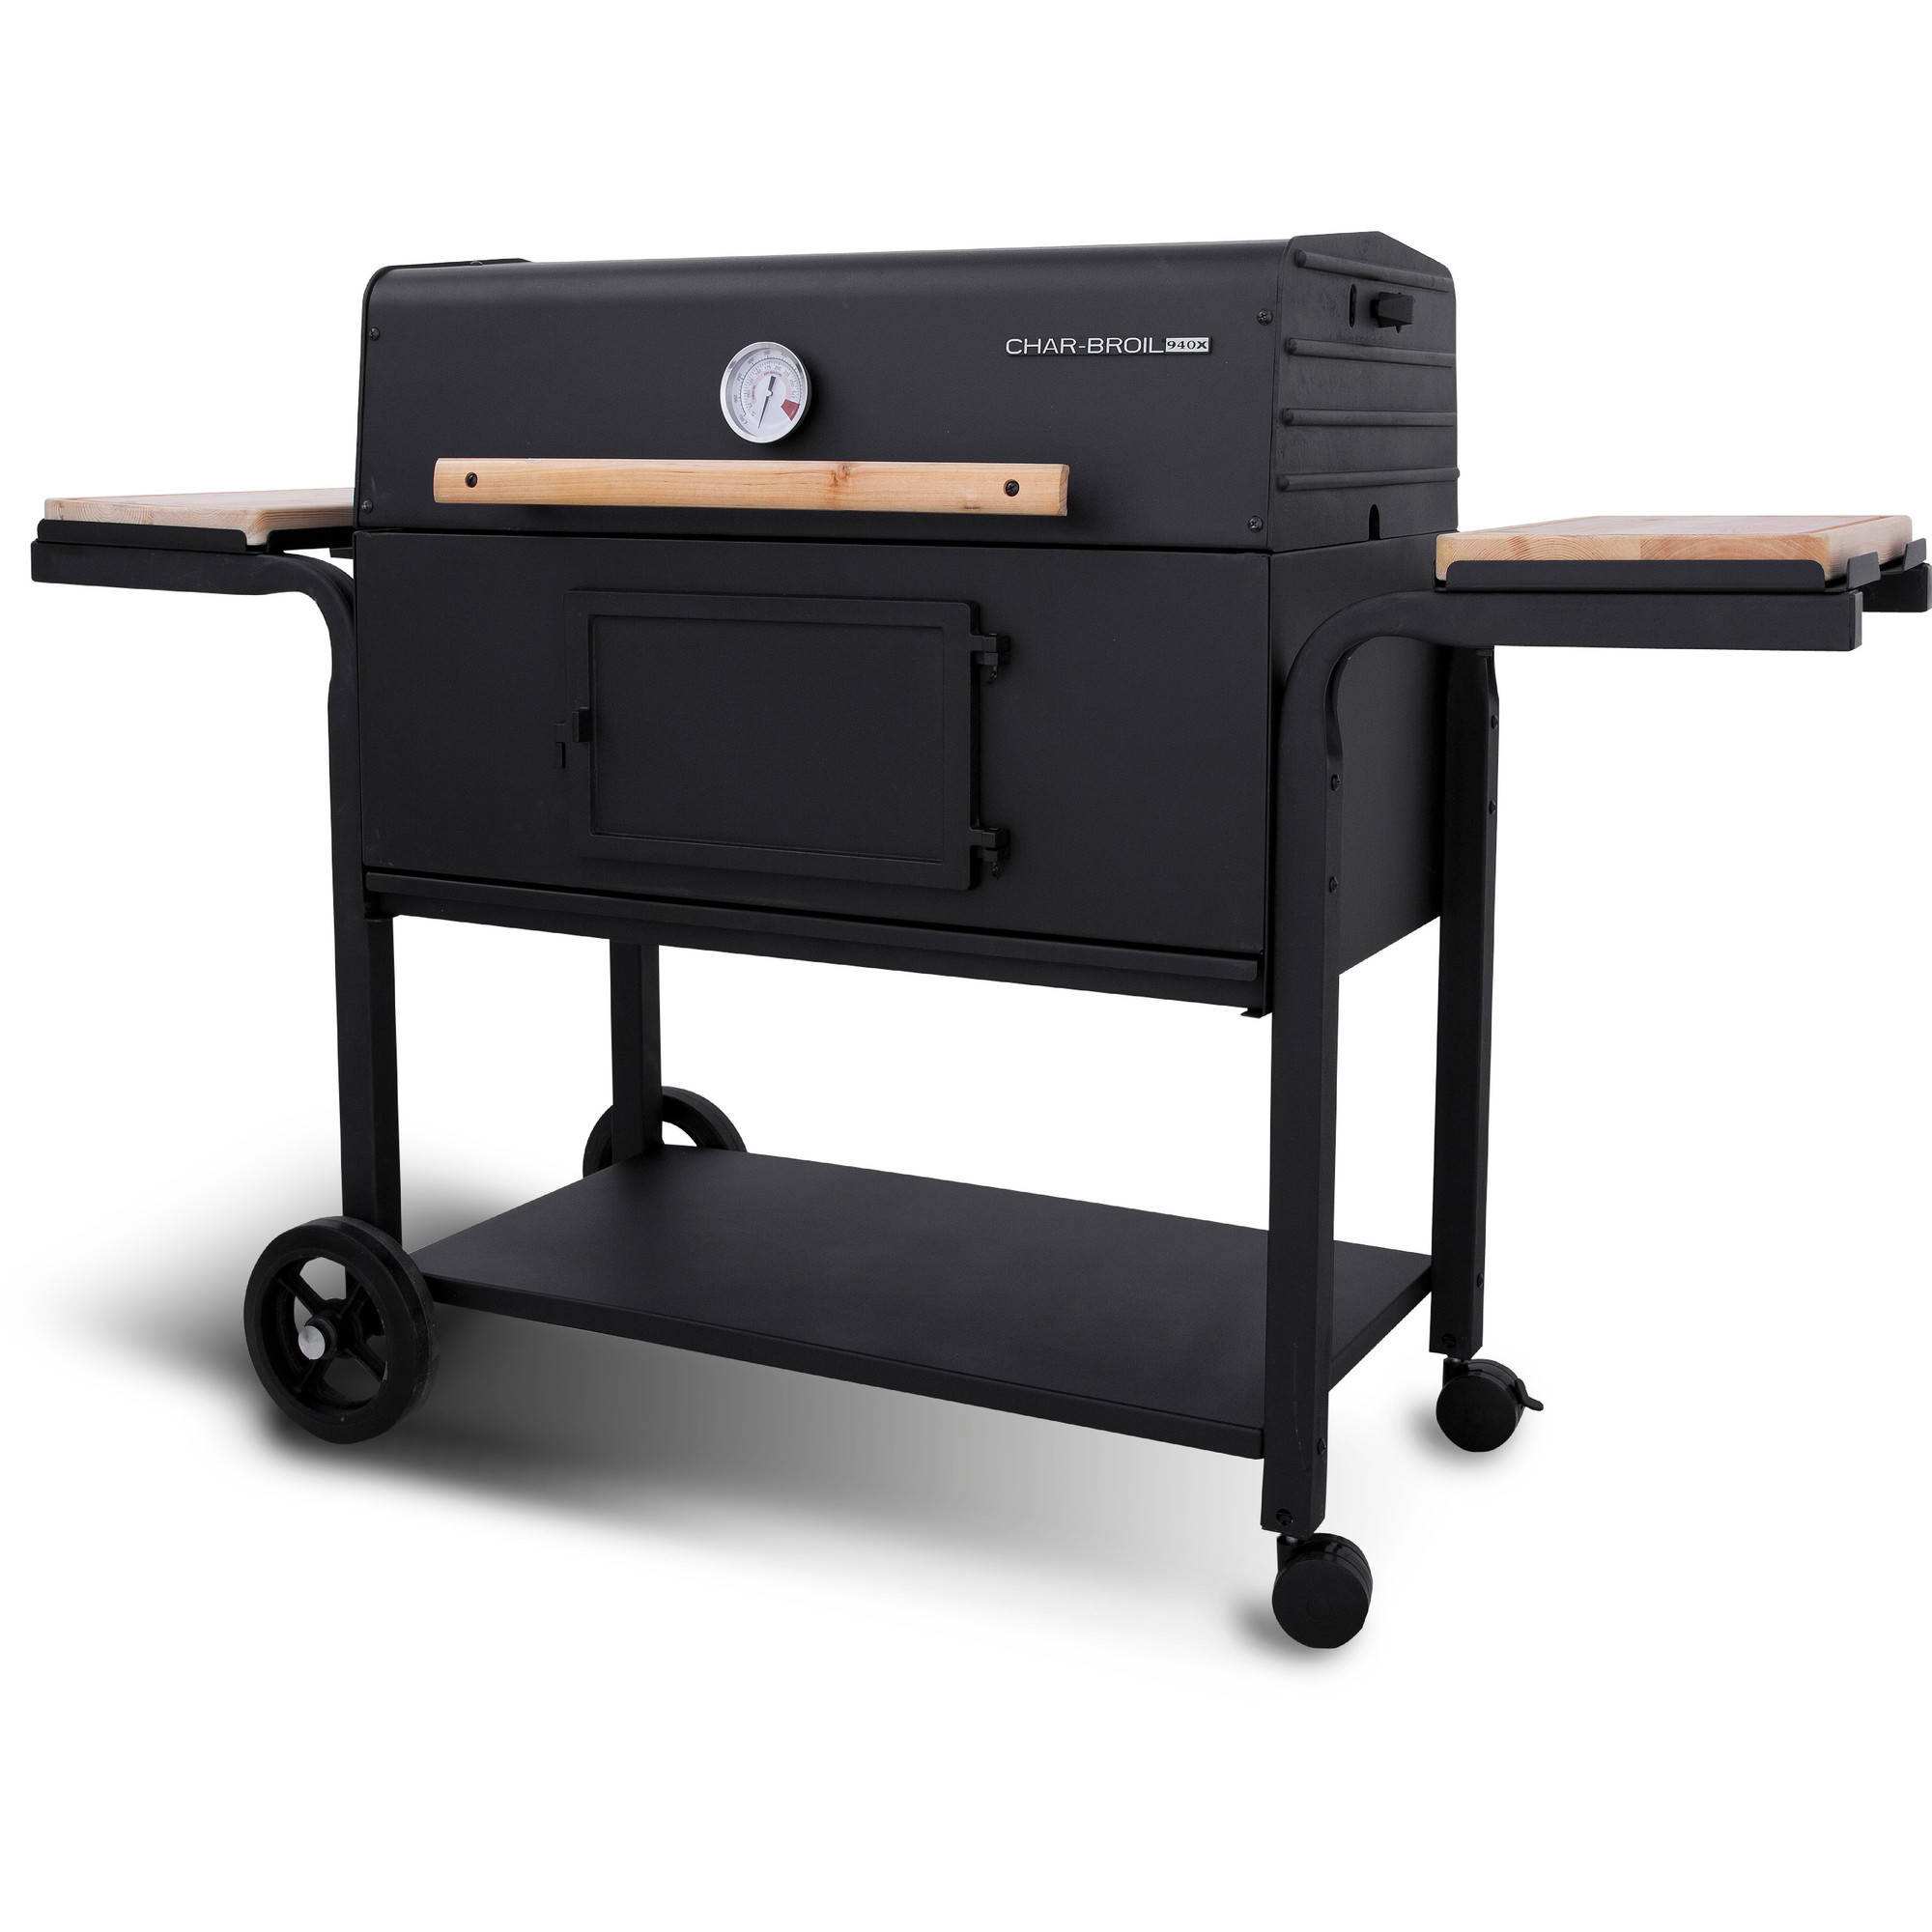 "Char-Broil 48"" CB940X Charcoal Grill by Charcoal Grills"